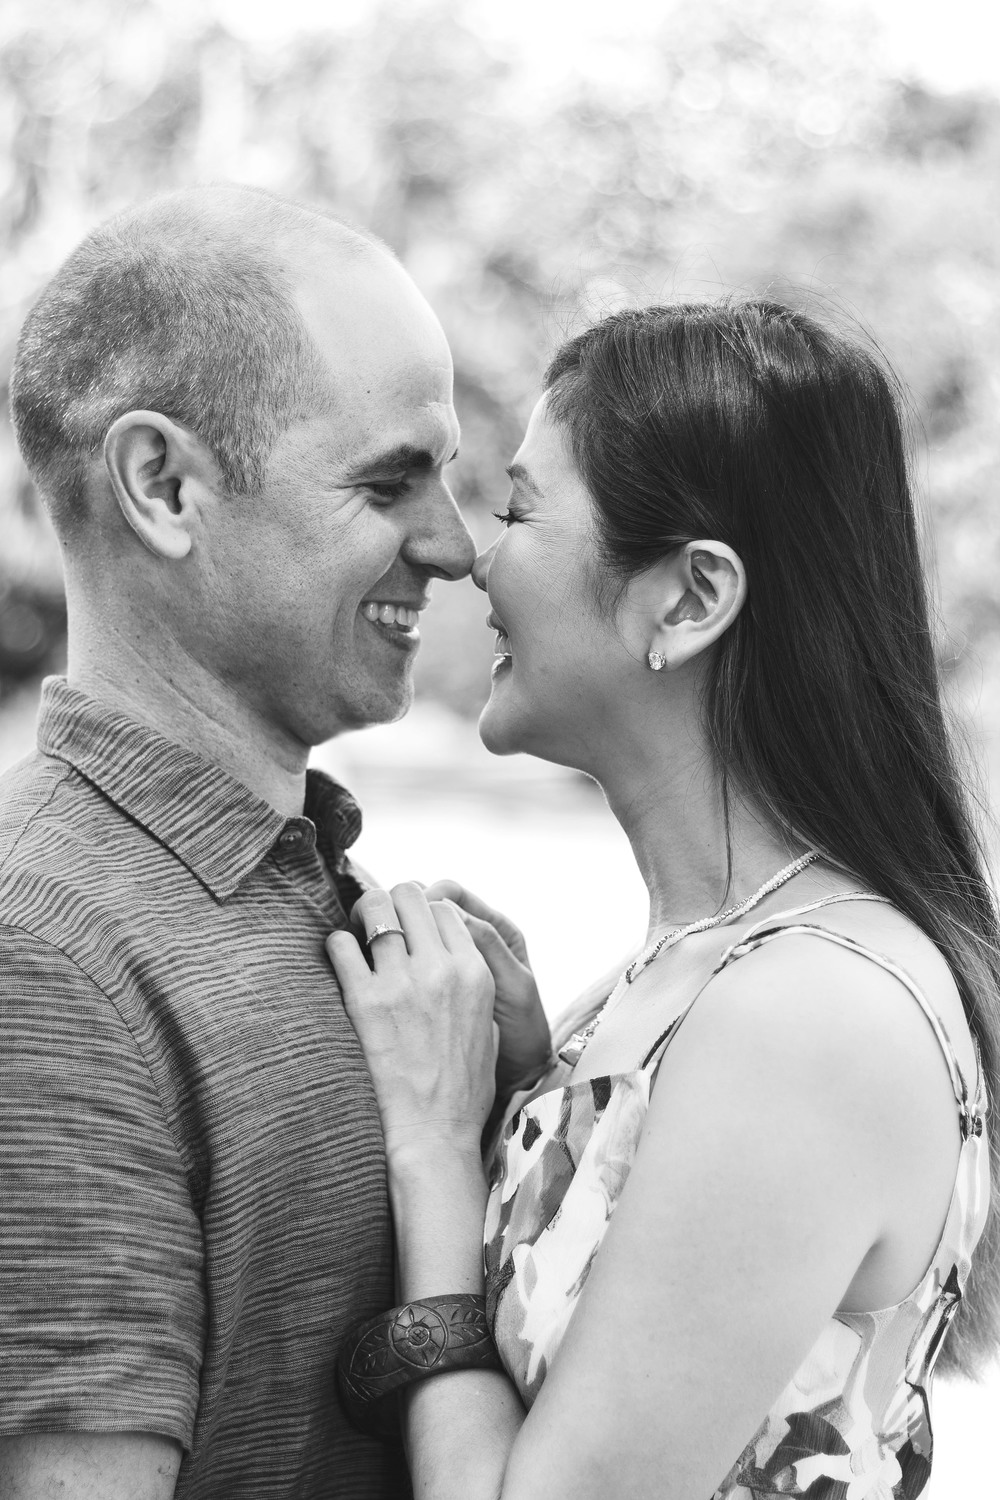 Airlie_Gardens_Engagement_Photography_Brian_&_Amy_40.jpg